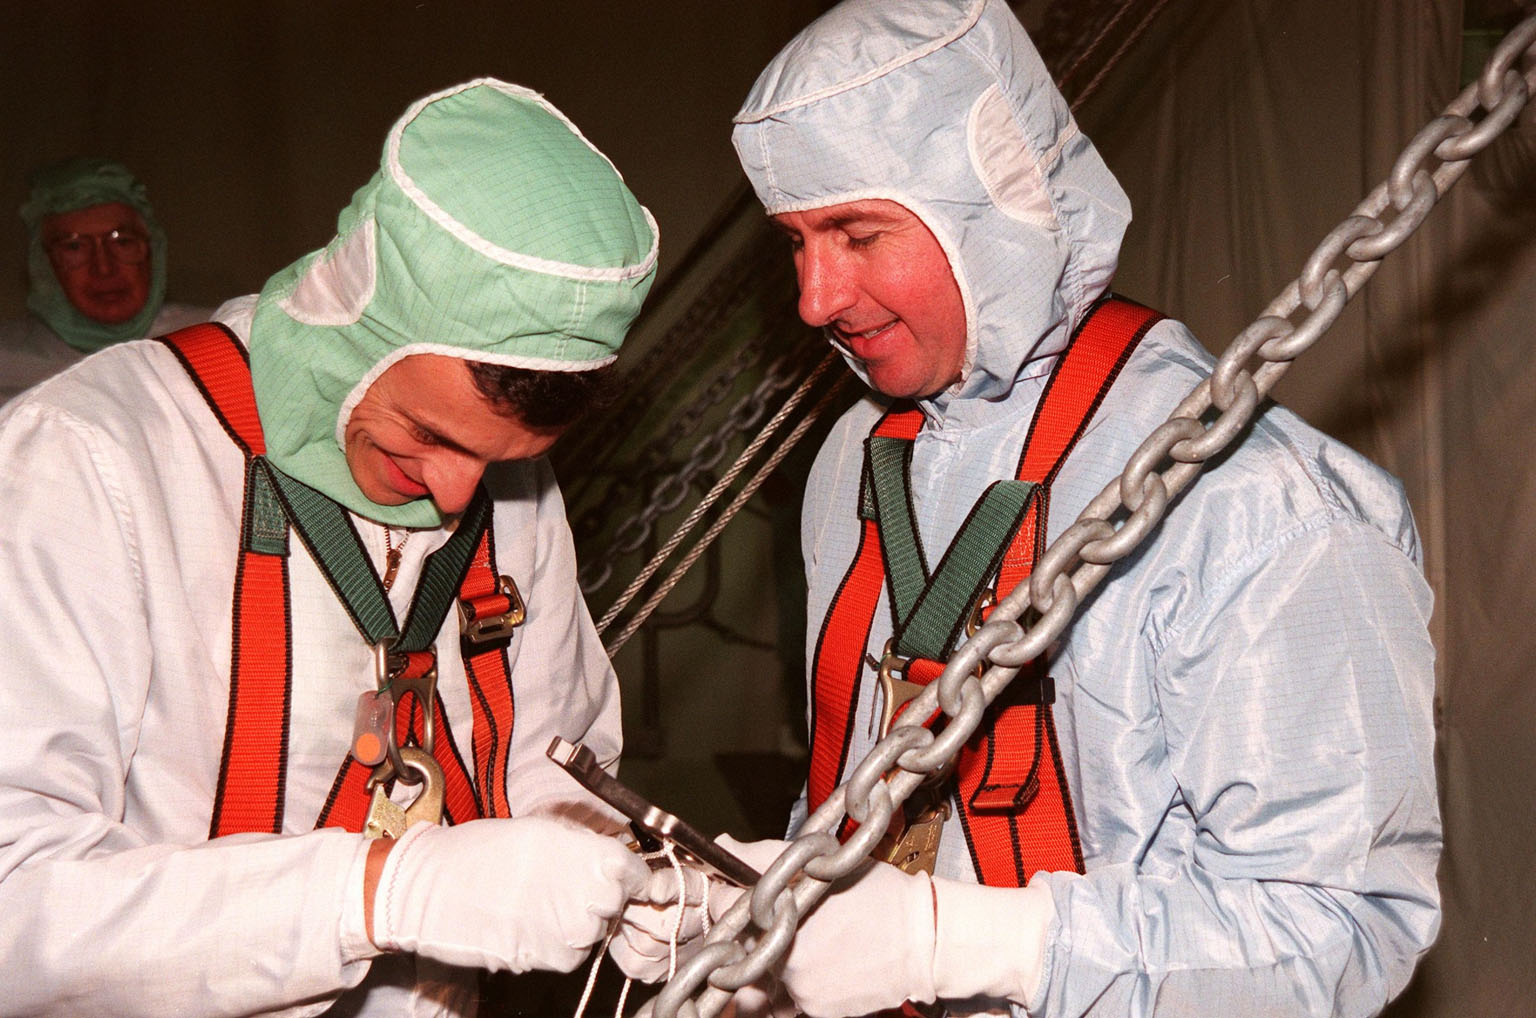 During the Crew Equipment Interface Test (CEIT) in the payload bay of Discovery, STS-95 Mission Specialist Pedro Duque (left), of the European Space Agency, tethers a wrench held by Mission Specialist Stephen K. Robinson (right) that they will use during the mission. The CEIT gives astronauts an opportunity for a hands-on look at the payloads and equipment with which they will be working on orbit. The launch of the STS-95 mission is scheduled for Oct. 29, 1998. The mission includes research payloads such as the Spartan solar-observing deployable spacecraft, the Hubble Space Telescope Orbital Systems Test Platform, the International Extreme Ultraviolet Hitchhiker, as well as the SPACEHAB single module with experiments on space flight and the aging process